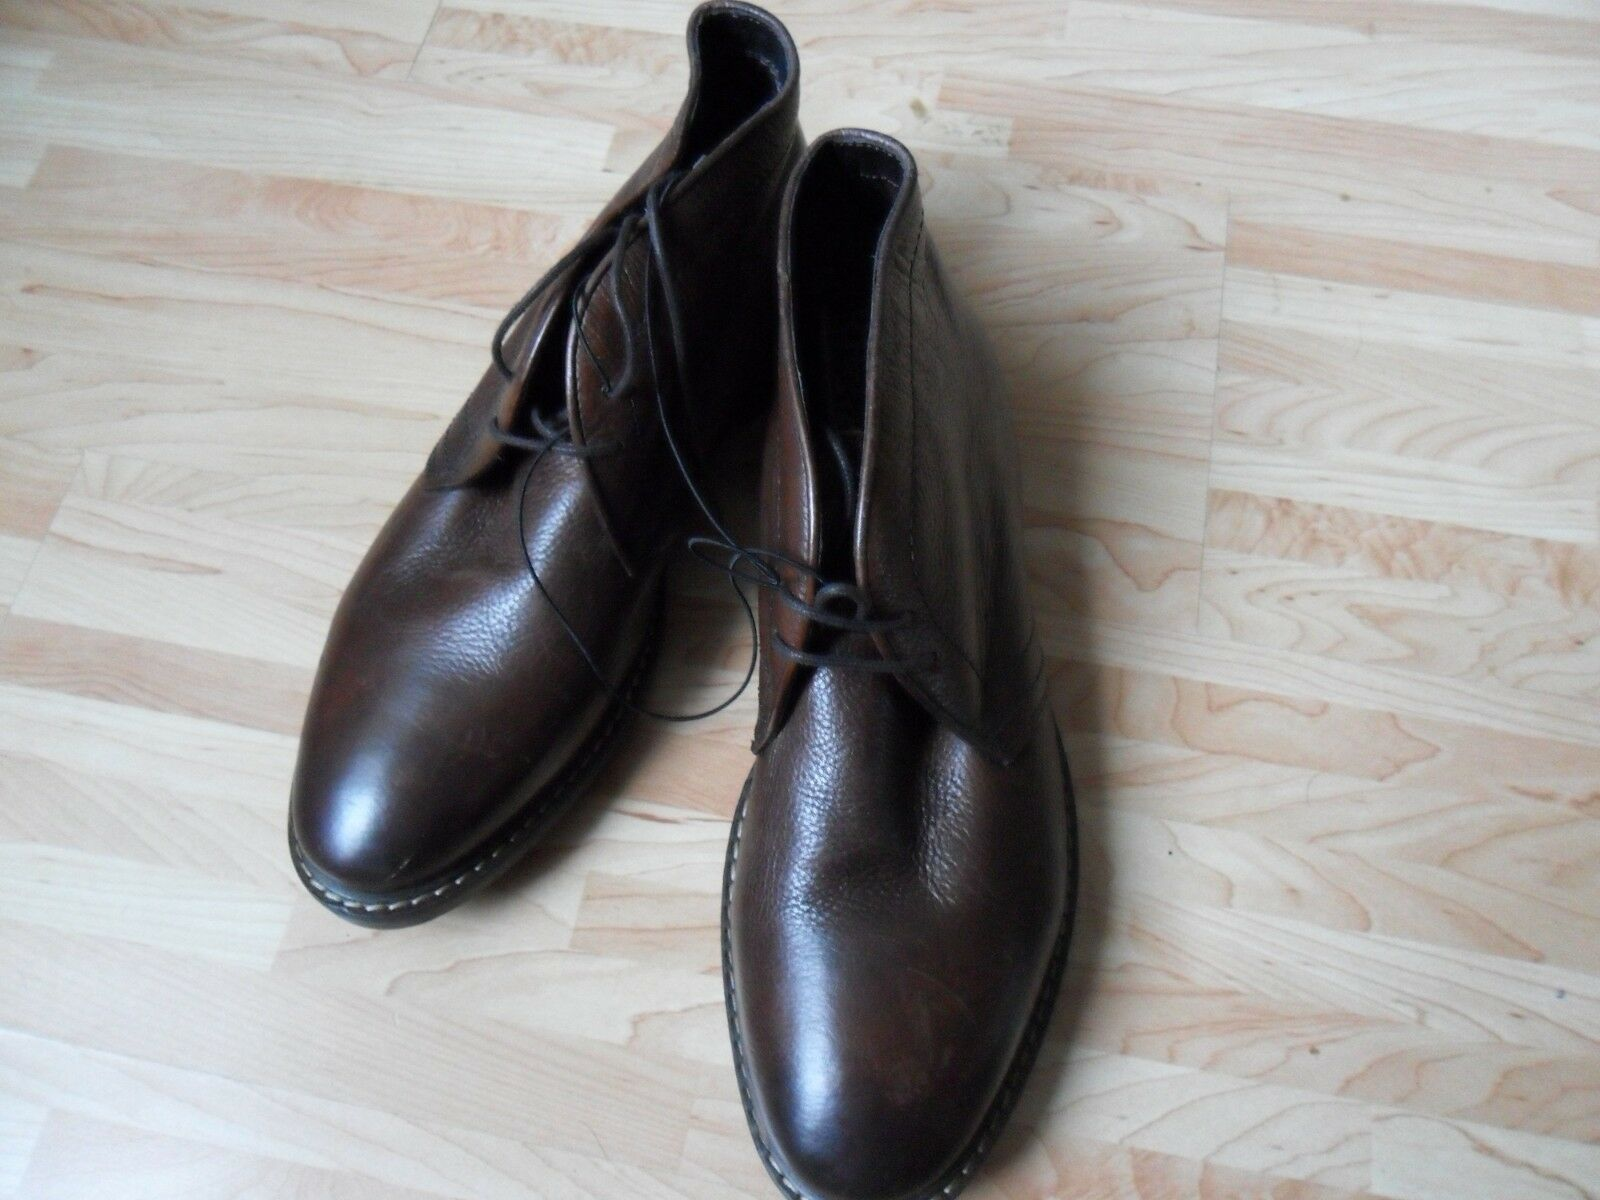 Marks & Spencer hi top leather brown lace up shoes size 8 brand new